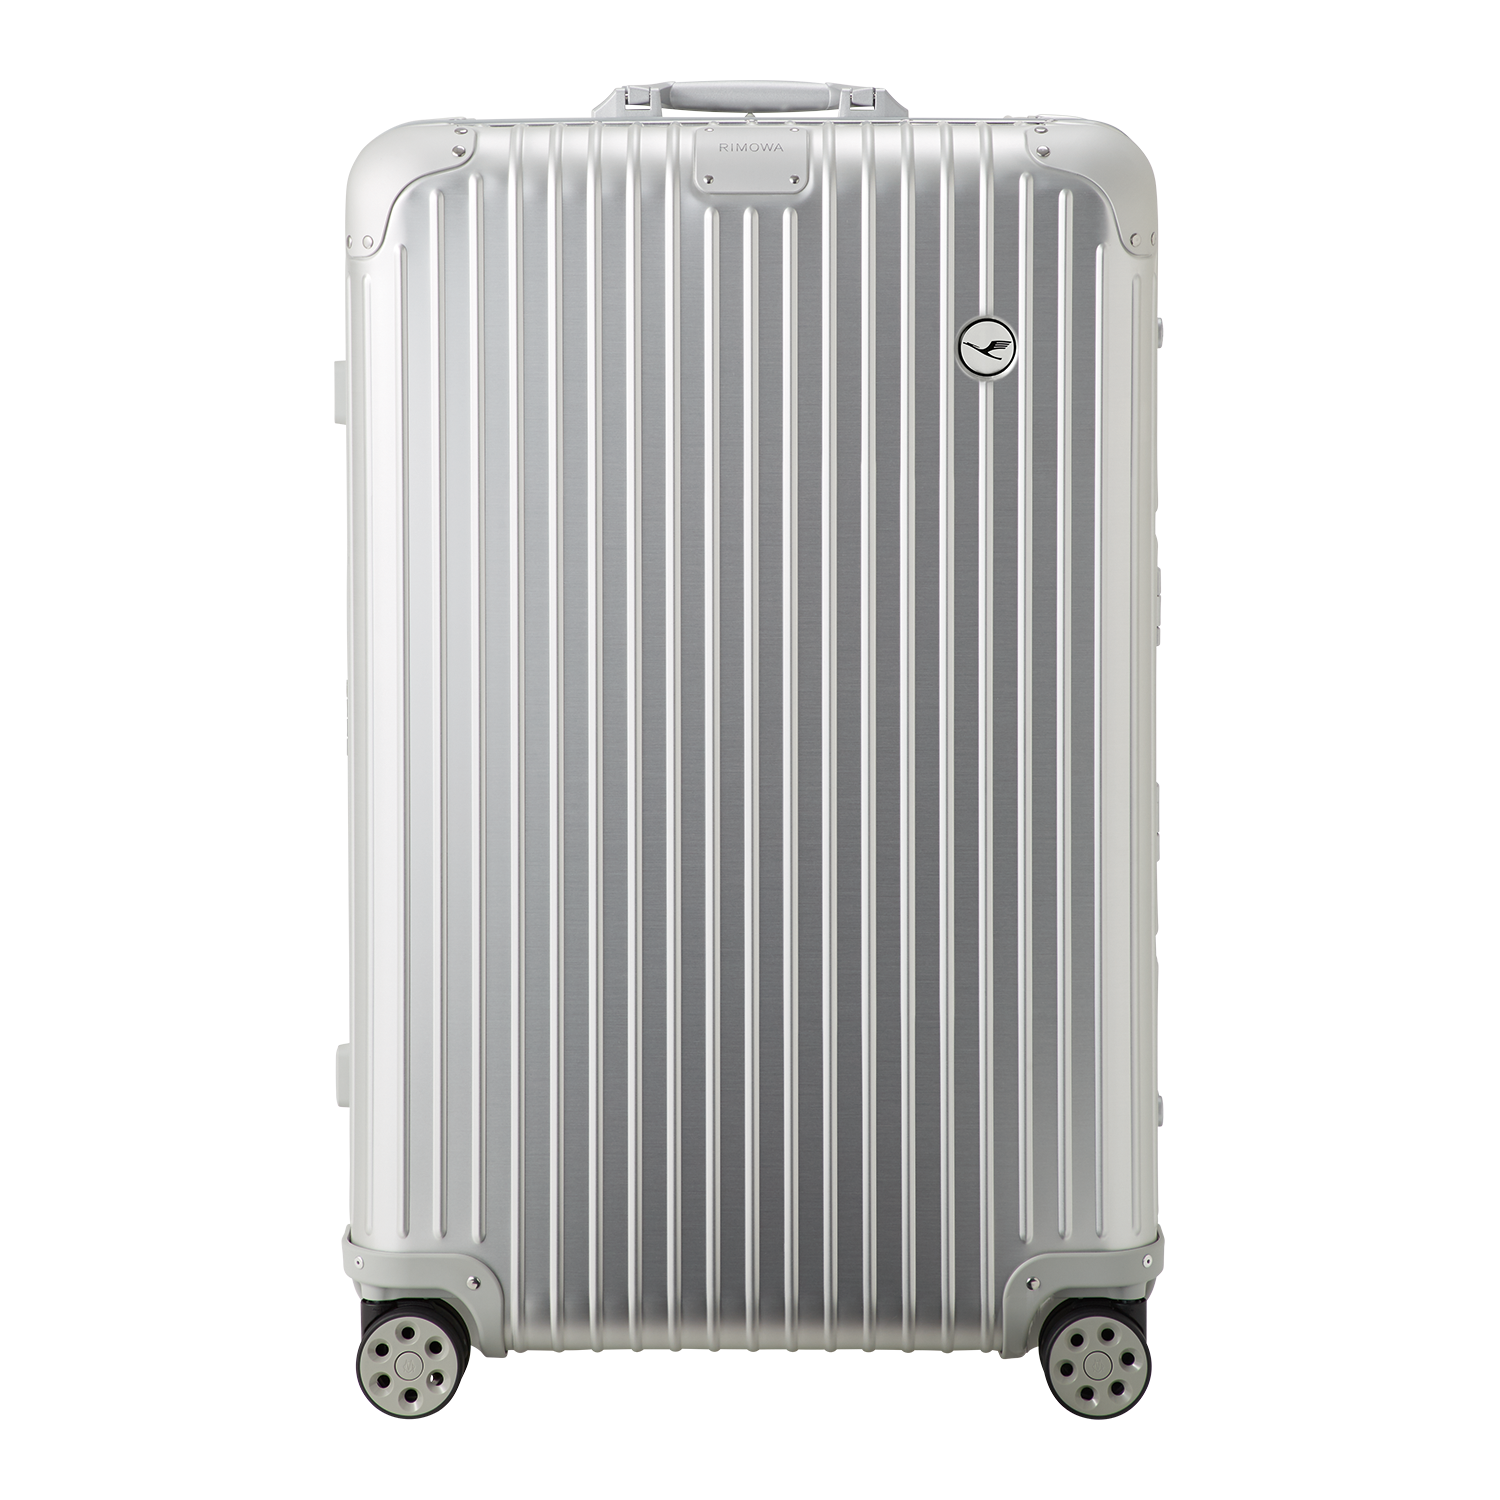 RIMOWA Original Lufthansa Edition Check-In L, Silber